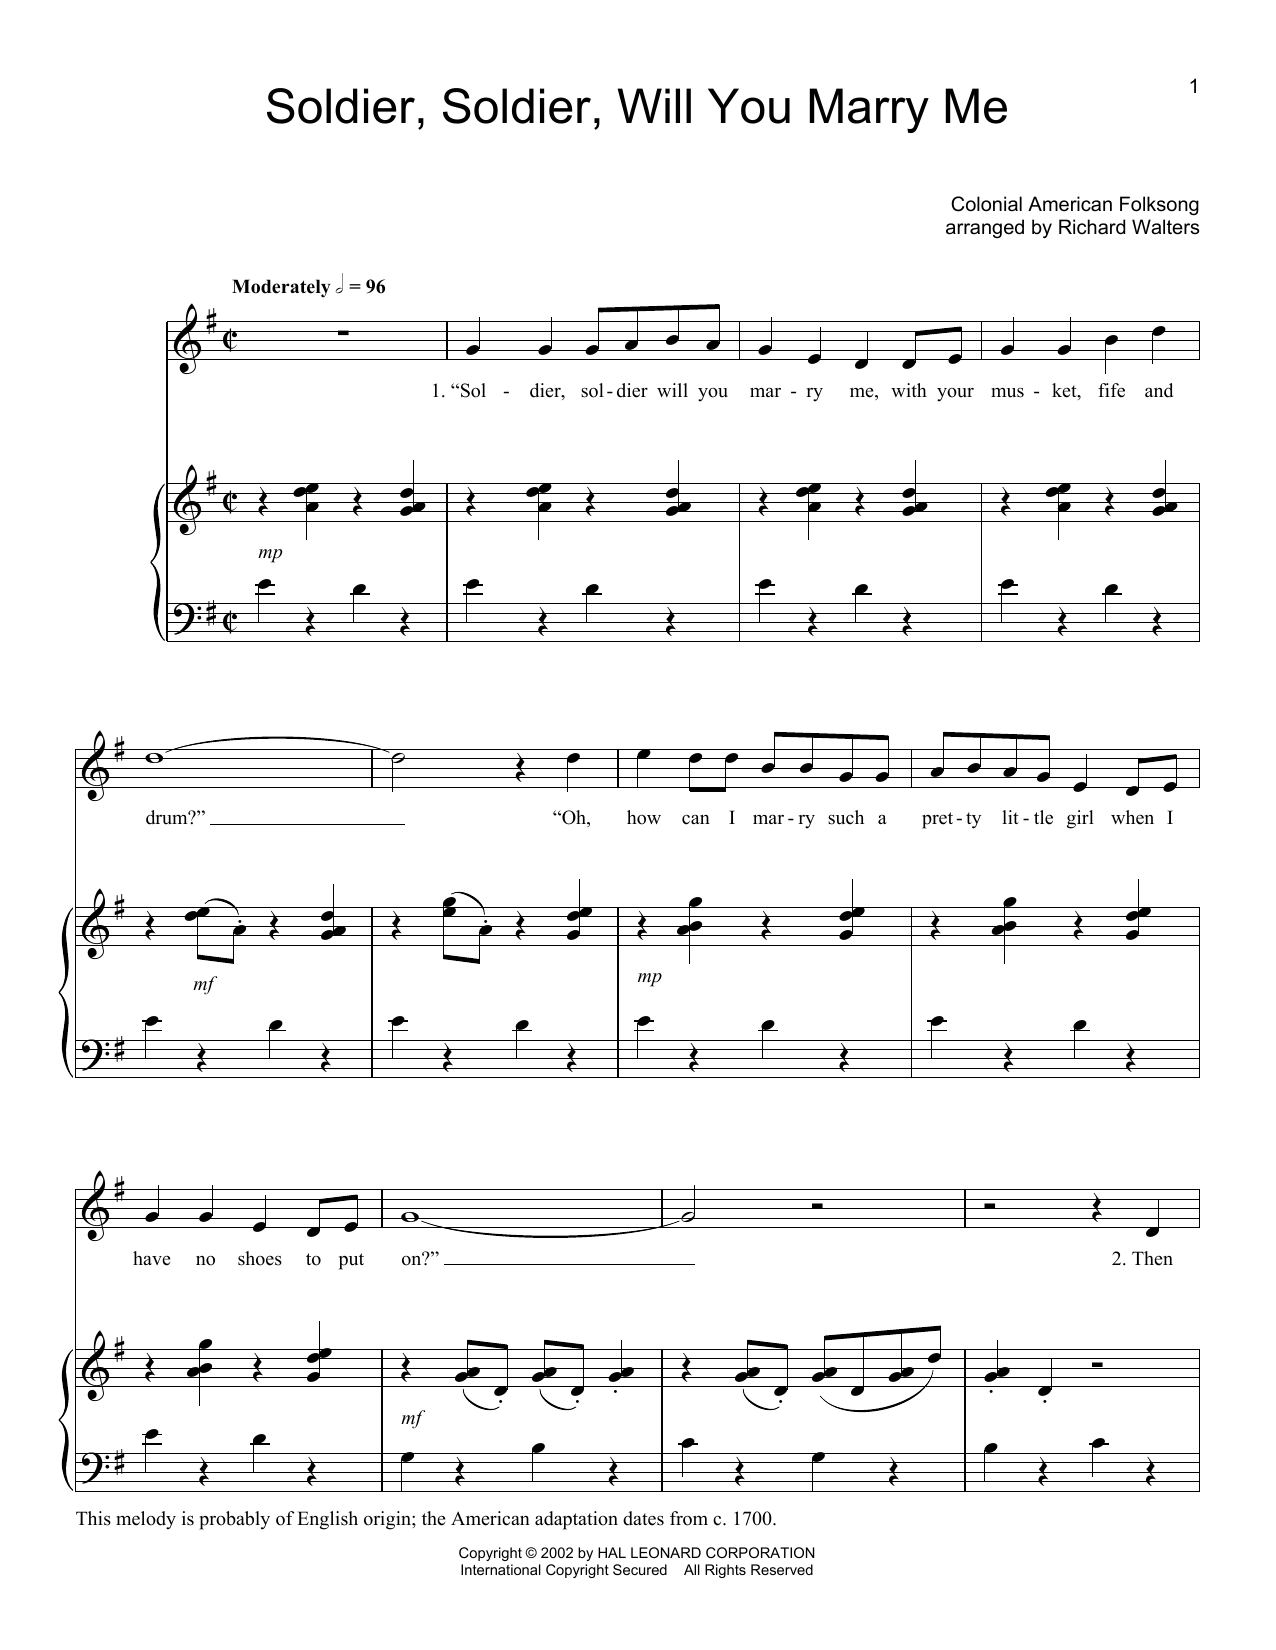 Folk Song Soldier, Soldier Will You Marry Me sheet music preview music notes and score for Piano, Vocal & Guitar (Right-Hand Melody) including 5 page(s)